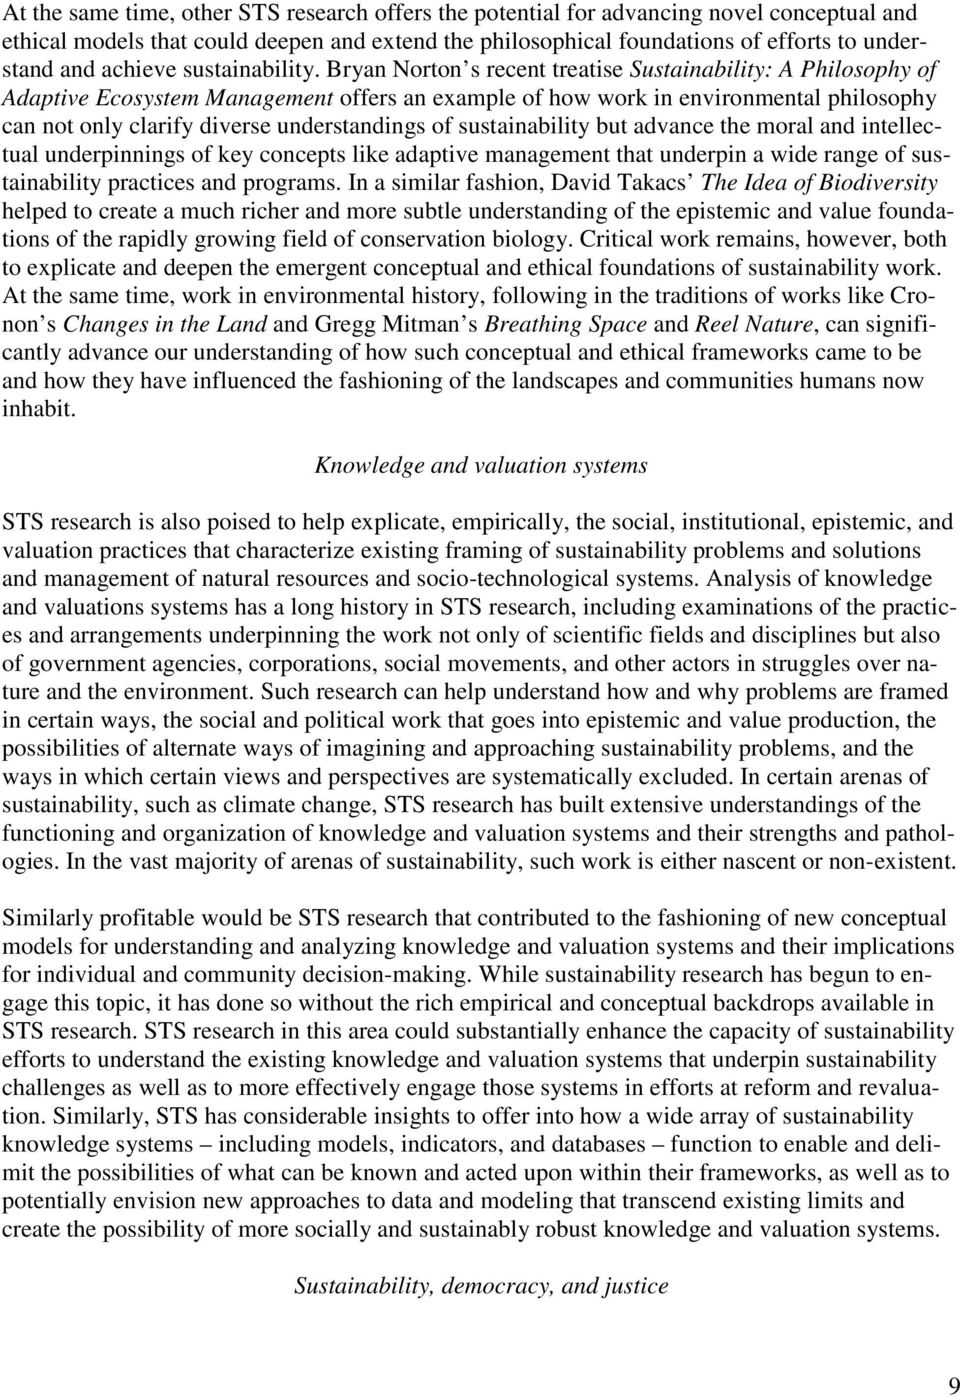 Bryan Norton s recent treatise Sustainability: A Philosophy of Adaptive Ecosystem Management offers an example of how work in environmental philosophy can not only clarify diverse understandings of